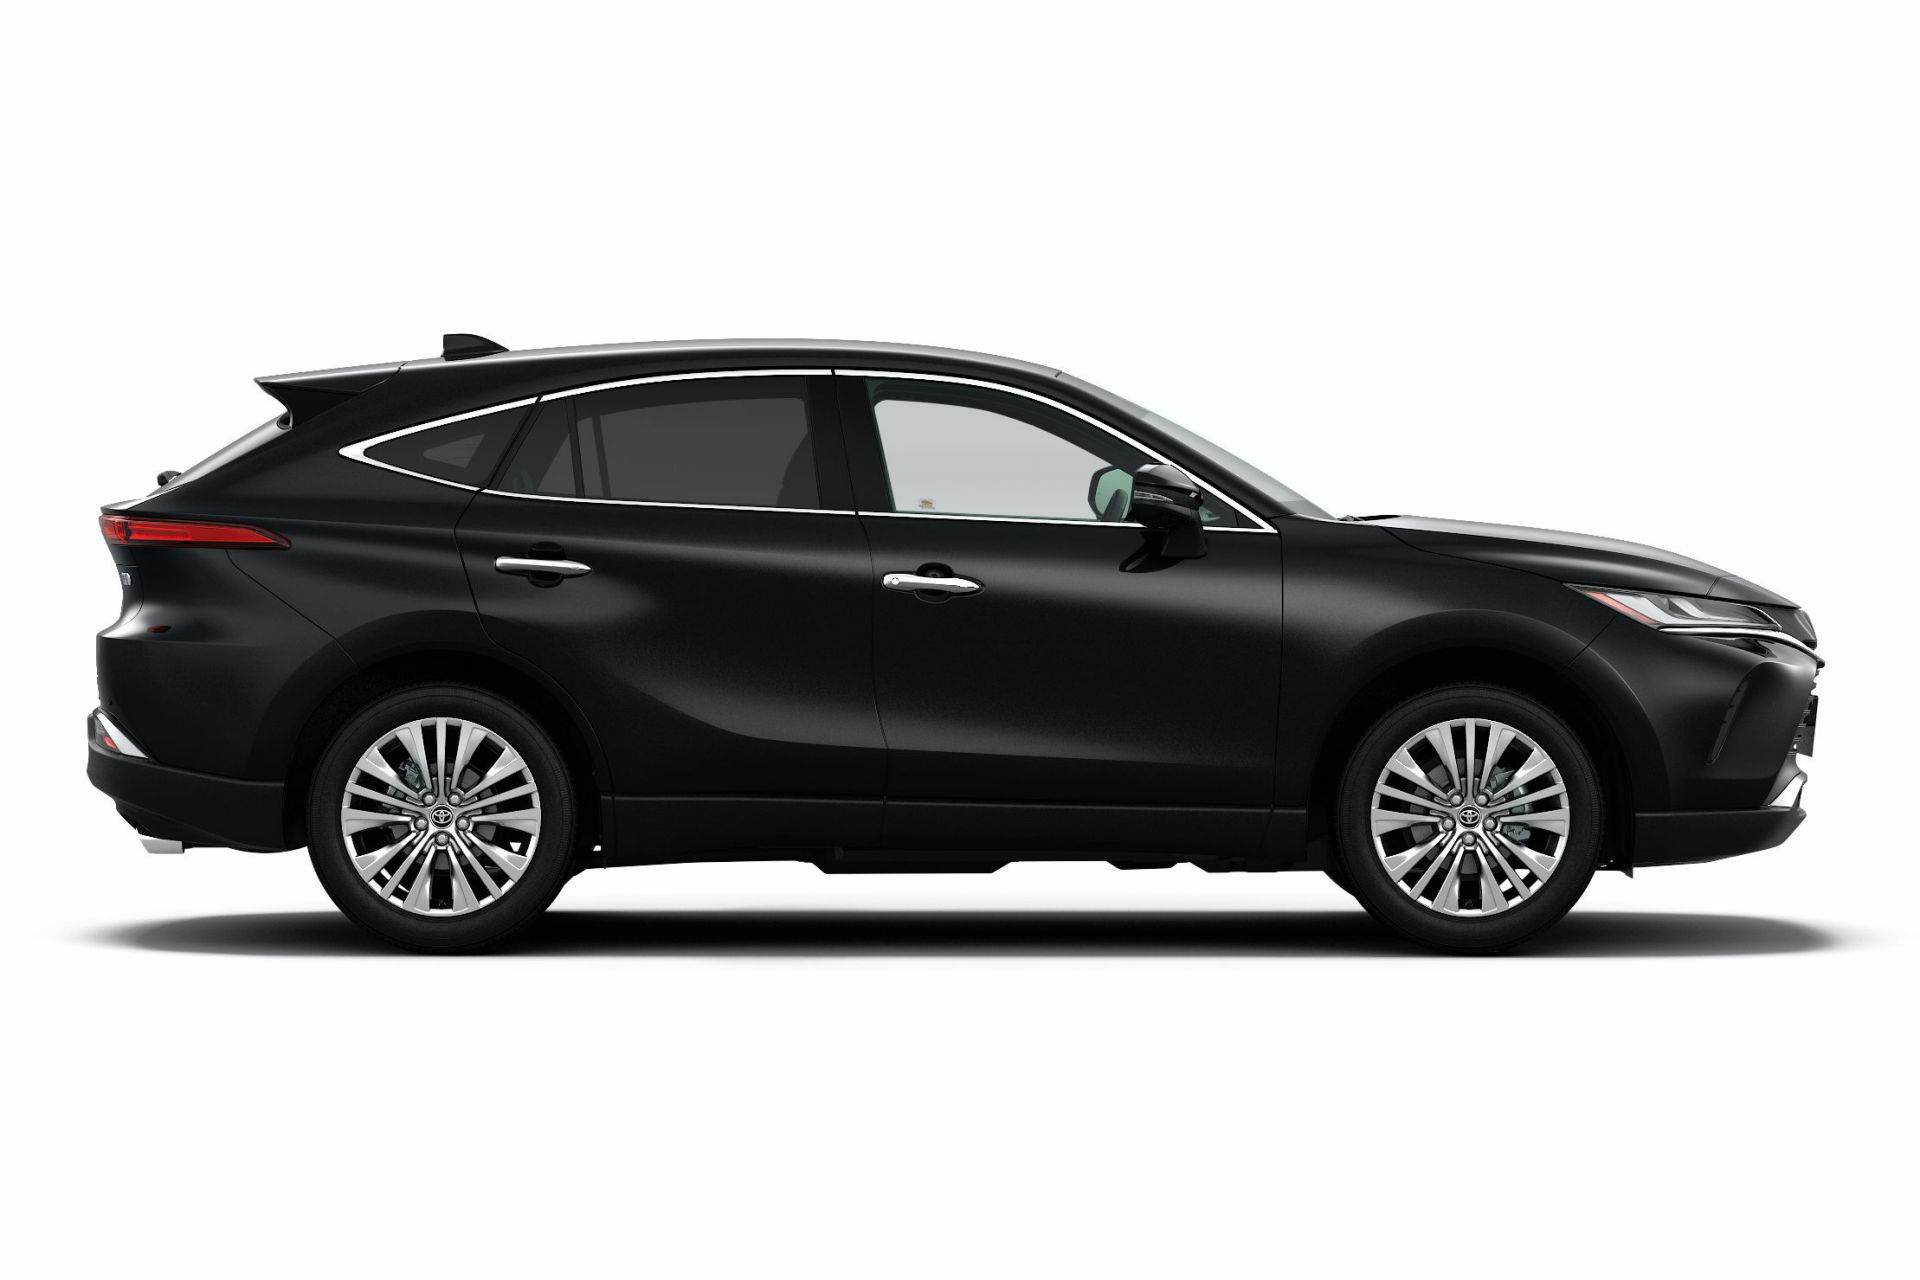 2020_Toyota_Harrier_0024